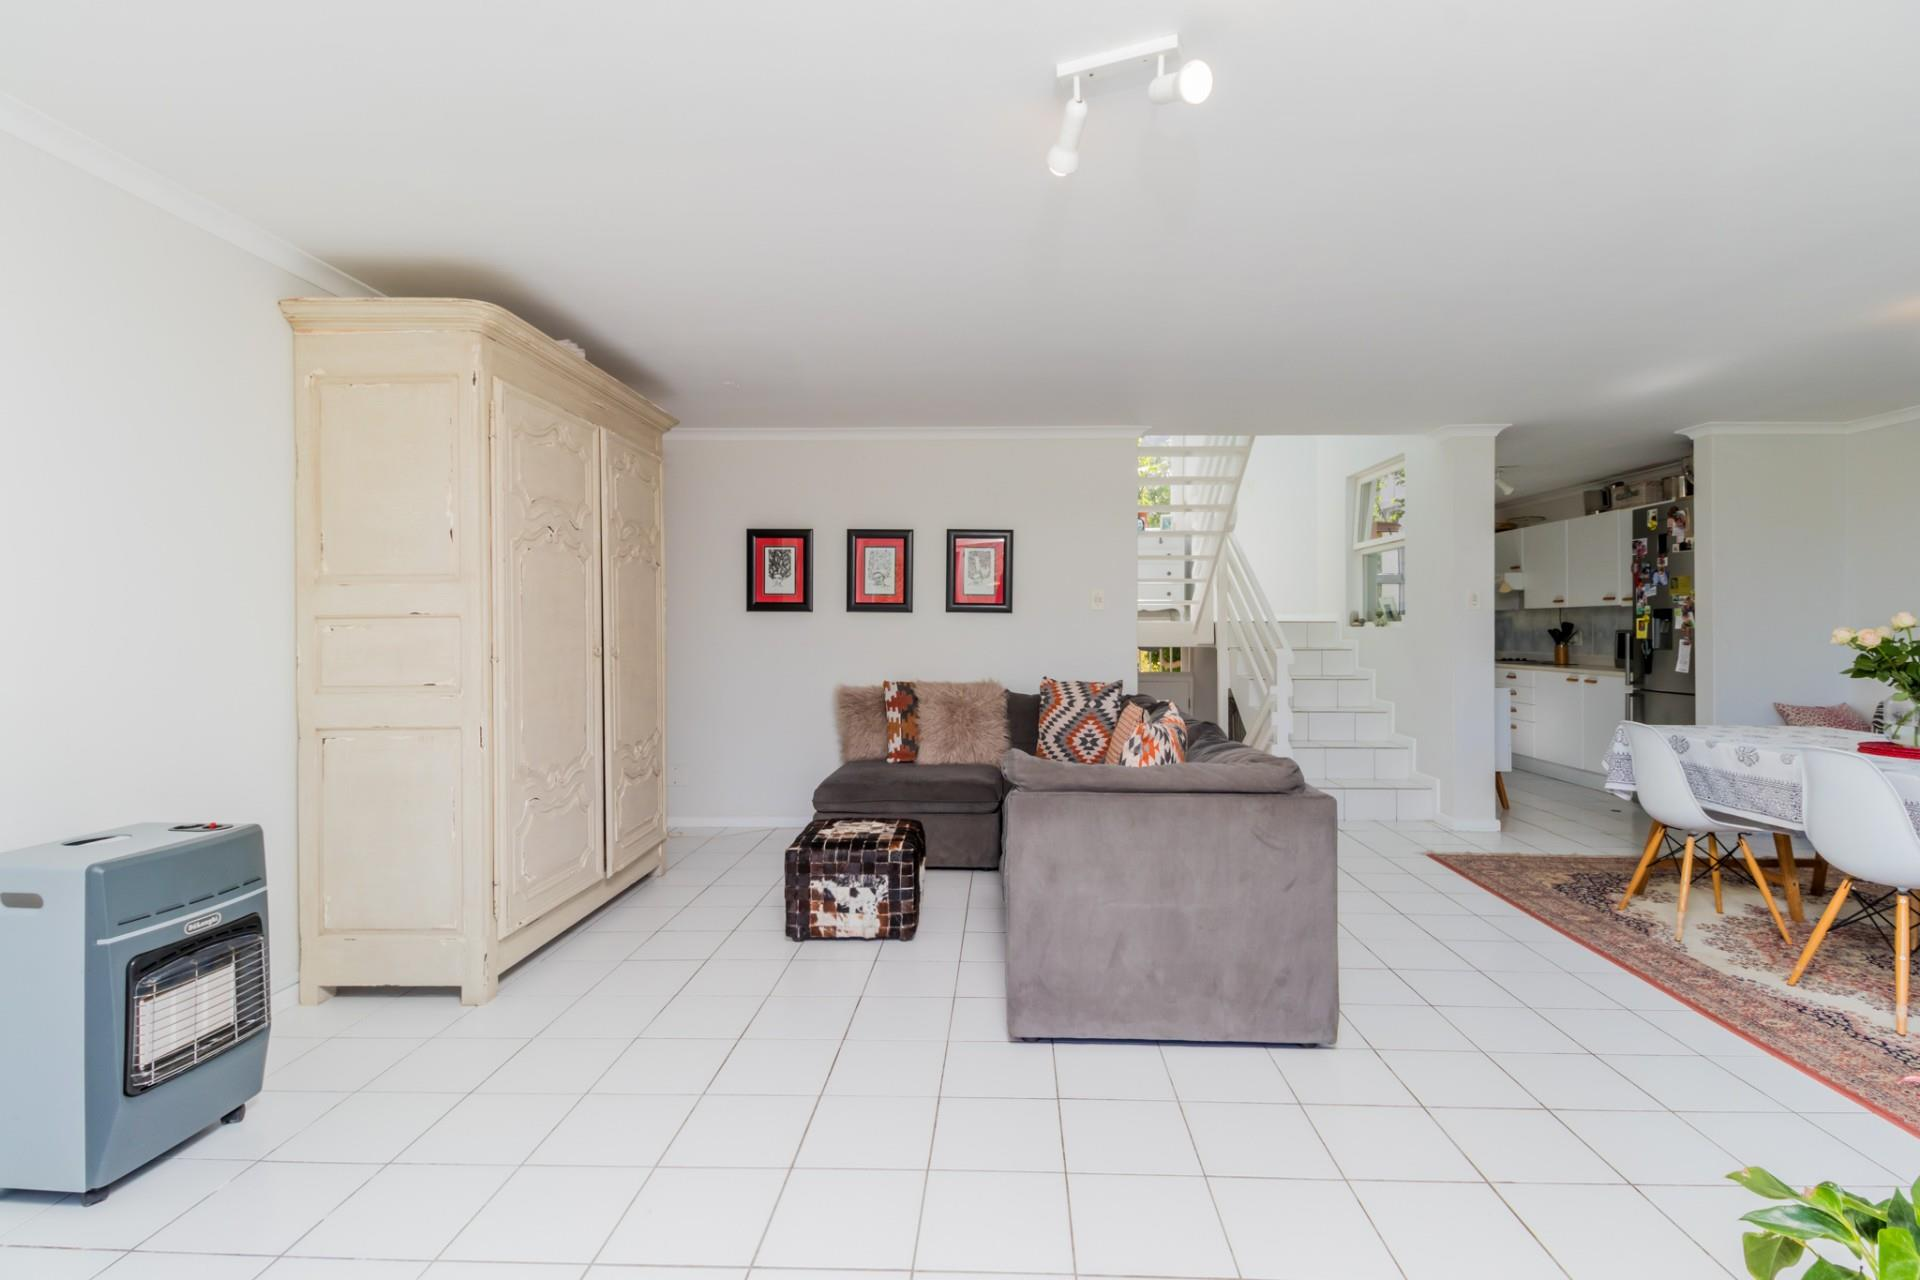 3 Bedroom Town house For Sale in Northshore